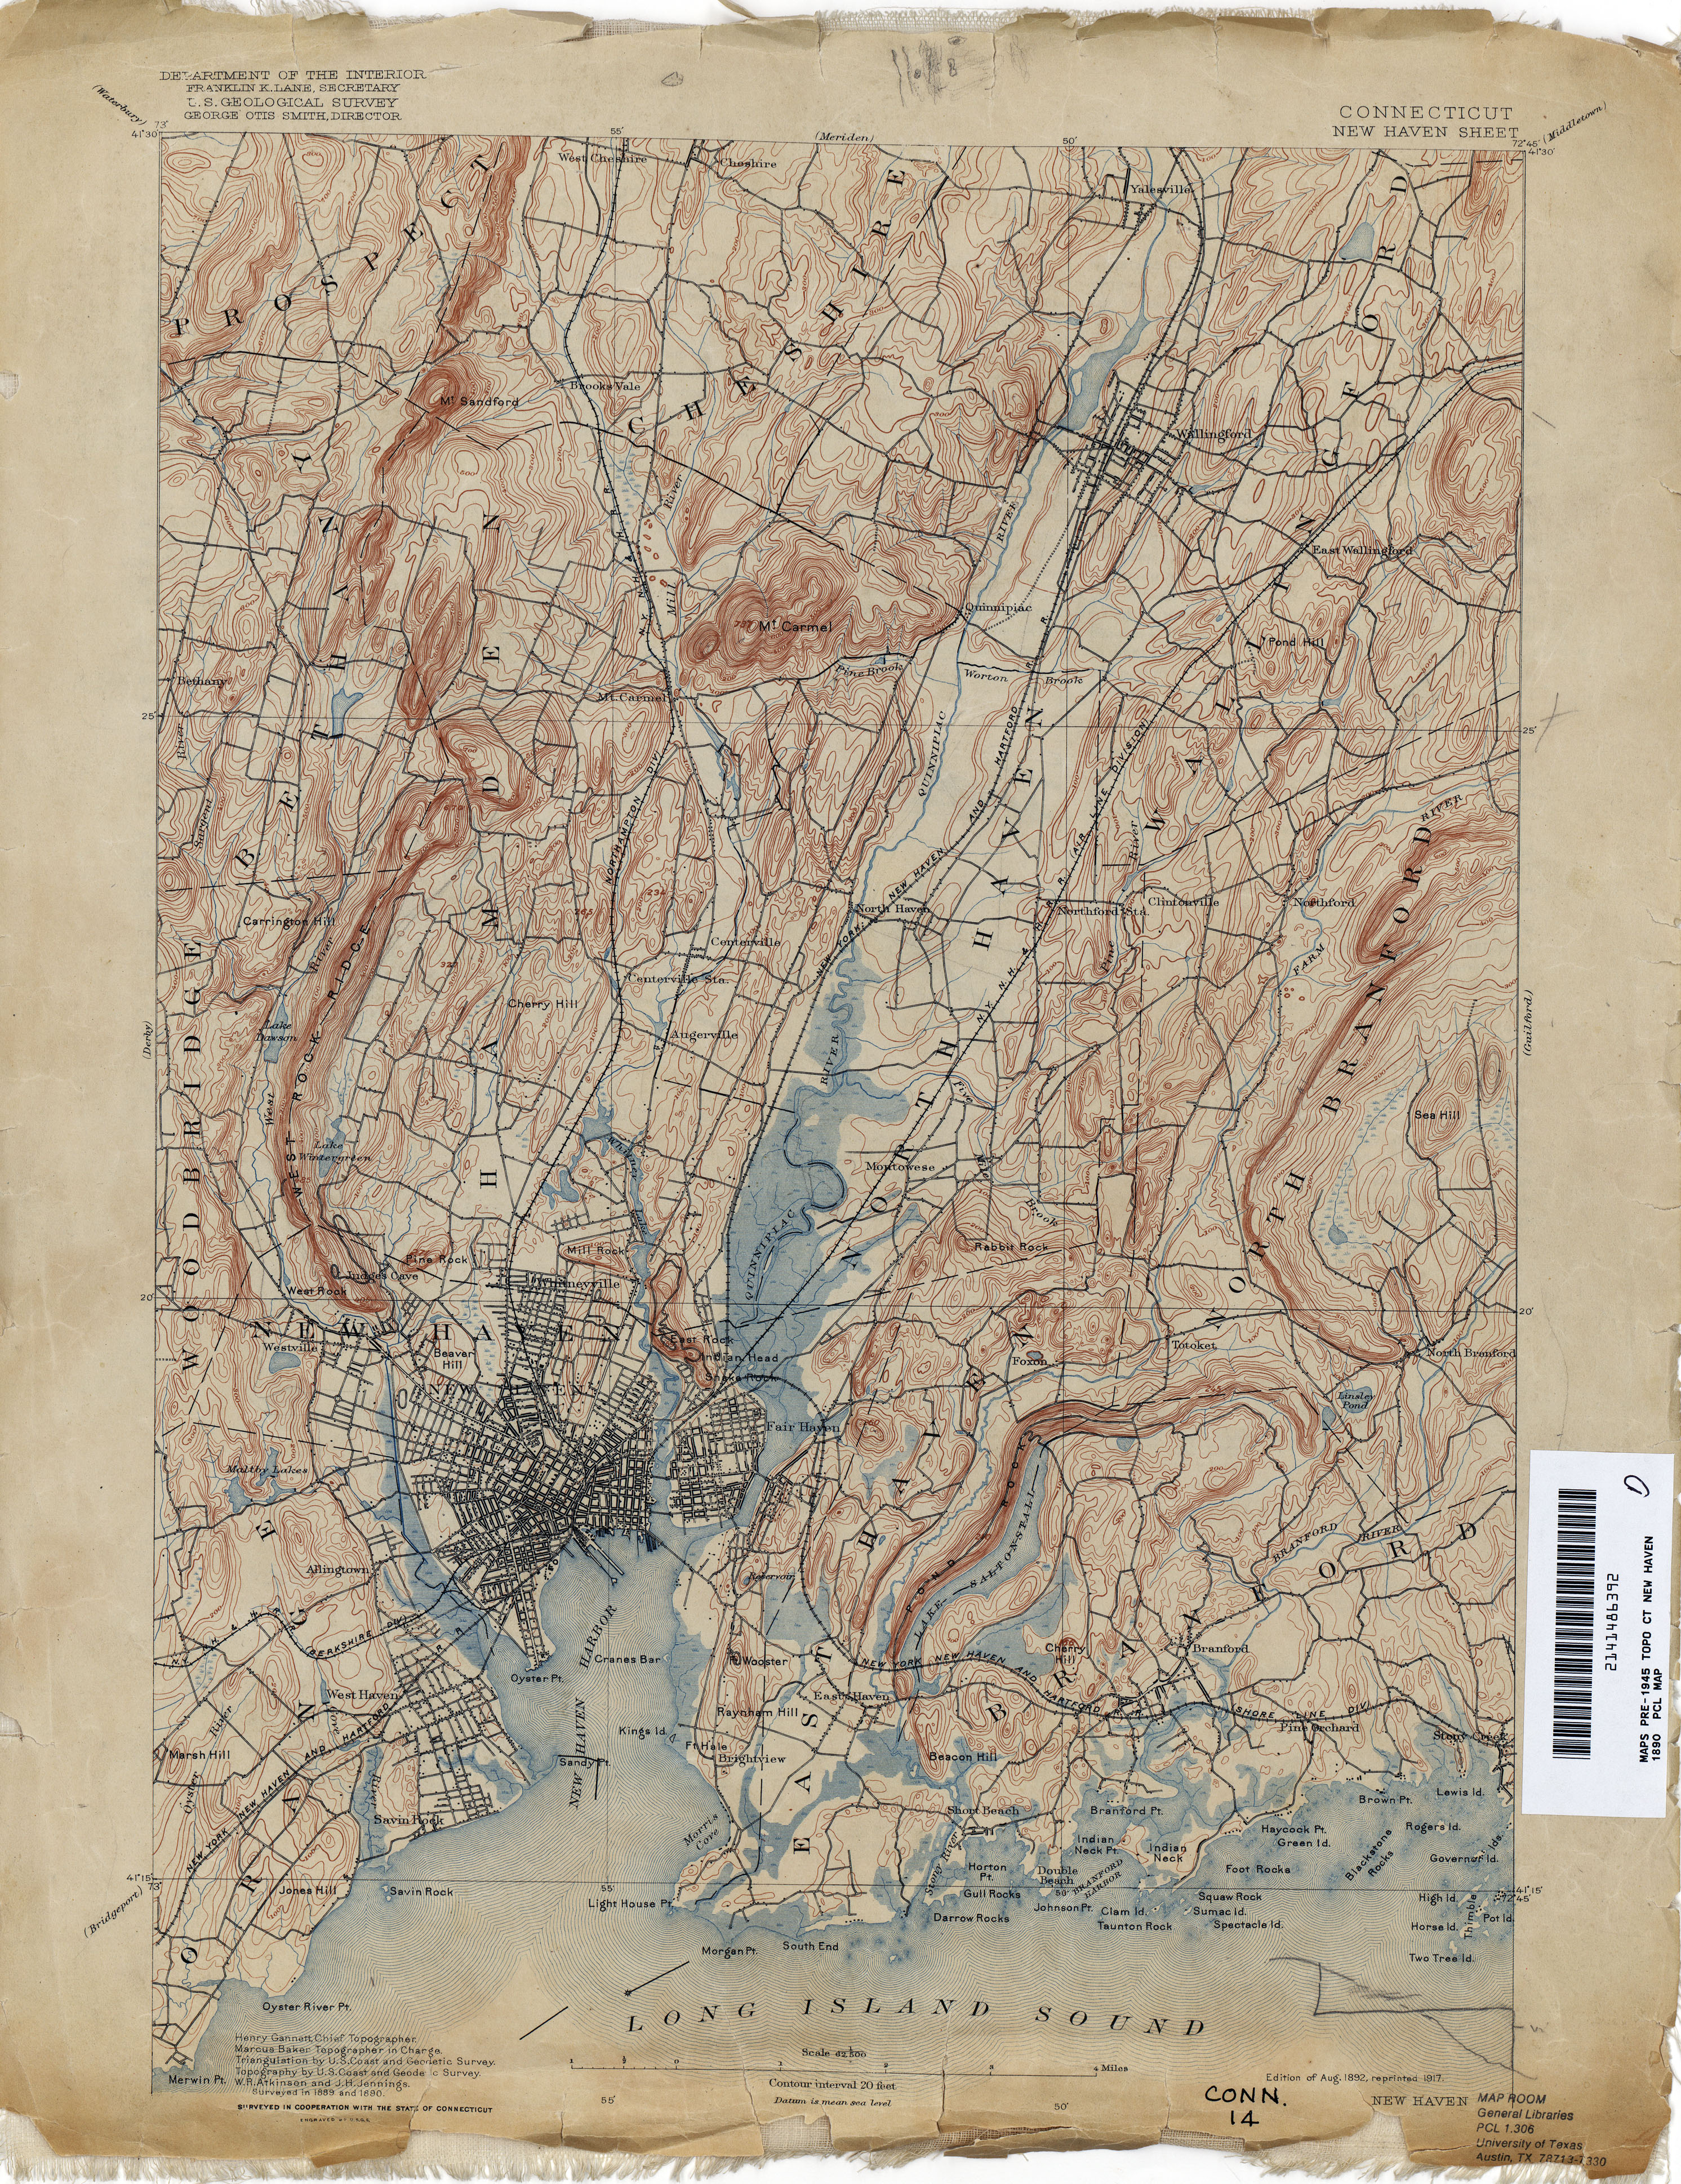 Connecticut Historical Topographic Maps - Perry-Castañeda ... on map of colchester ct, map of vernon rockville ct, map of southington ct, map of union ct, map of carolina pr, map of thompsonville ct, map of long island sound ct, map of connecticut, map of state of ct, map of windsor ct, map of north granby ct, map of mohegan sun ct, map of north haven ct, map of hamburg ct, map of wauregan ct, map of boston ct, map of stonington borough ct, map of webster ct, map of gaylordsville ct, map of woodbridge ct,